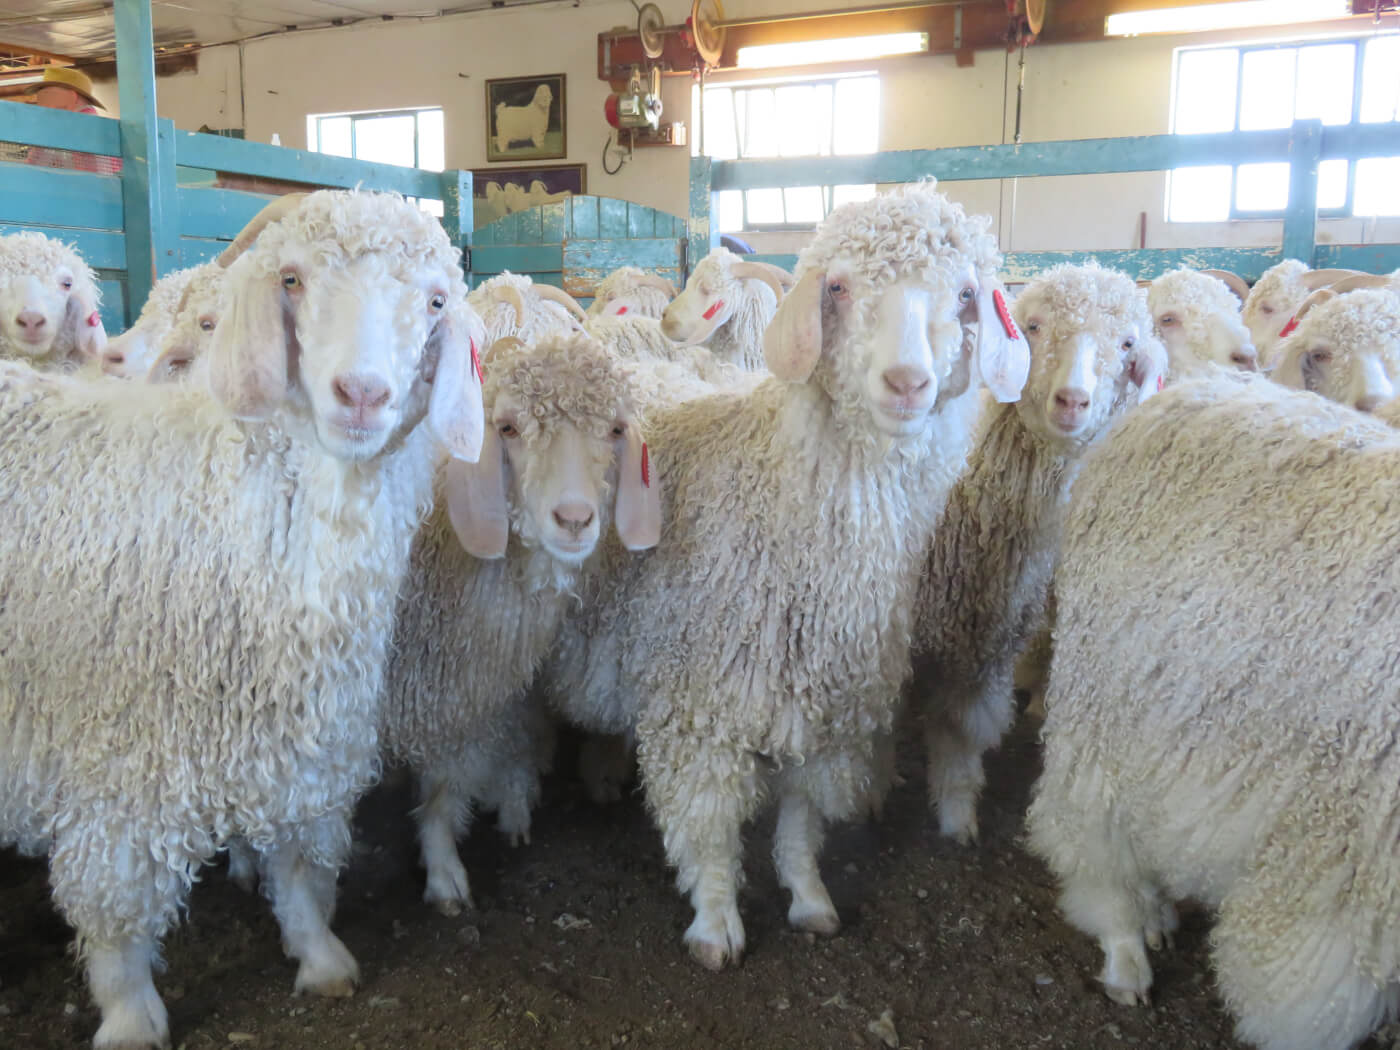 Breaking Video: Goats Thrown, Cut, Killed for Mohair—Help